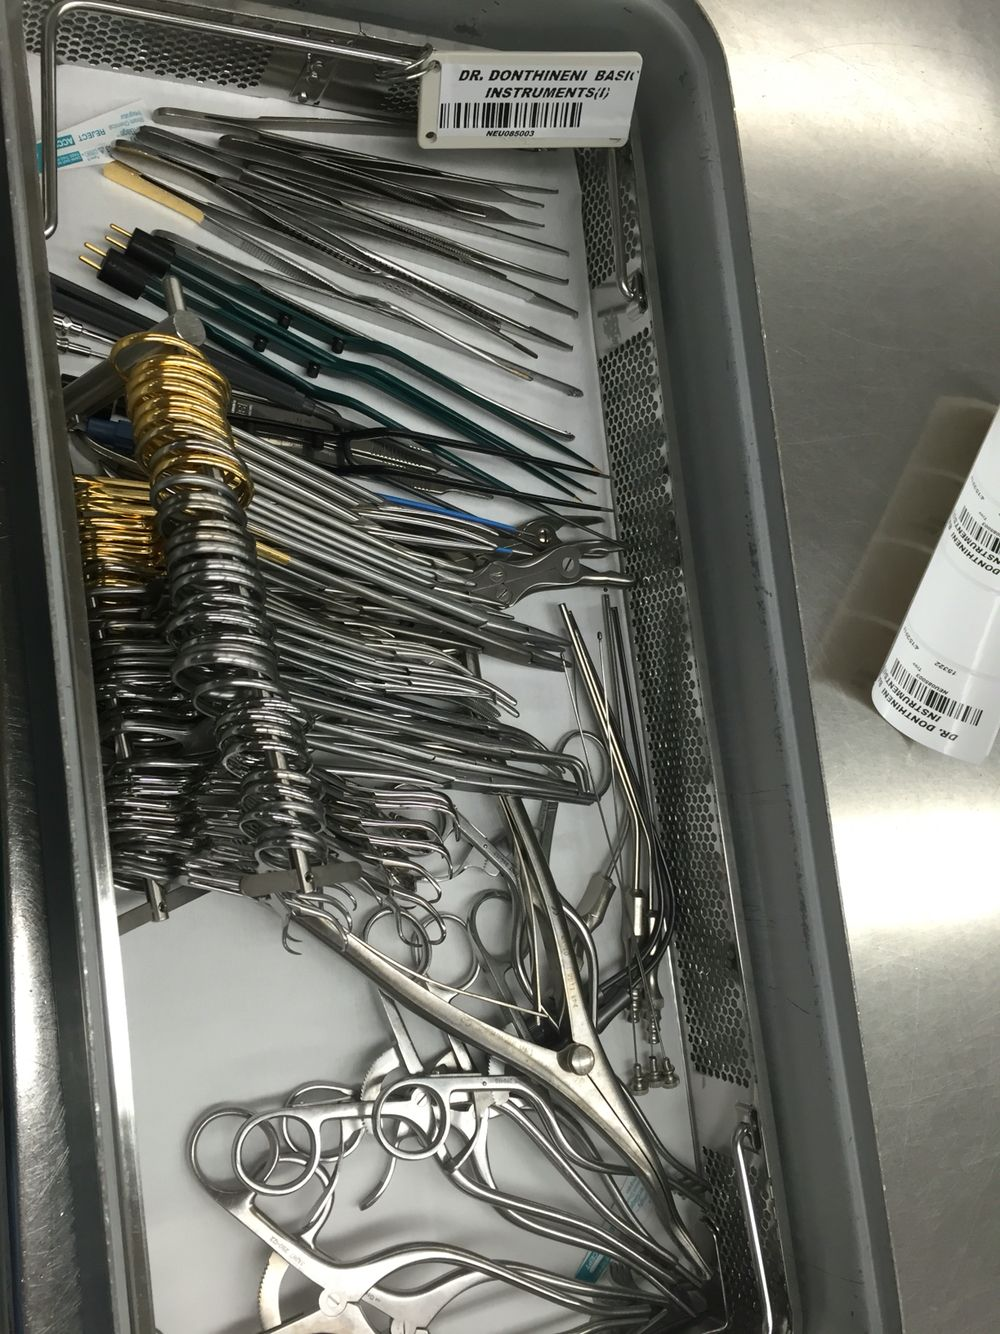 Pin by Andrea Storey on Surgical instruments/ SPD